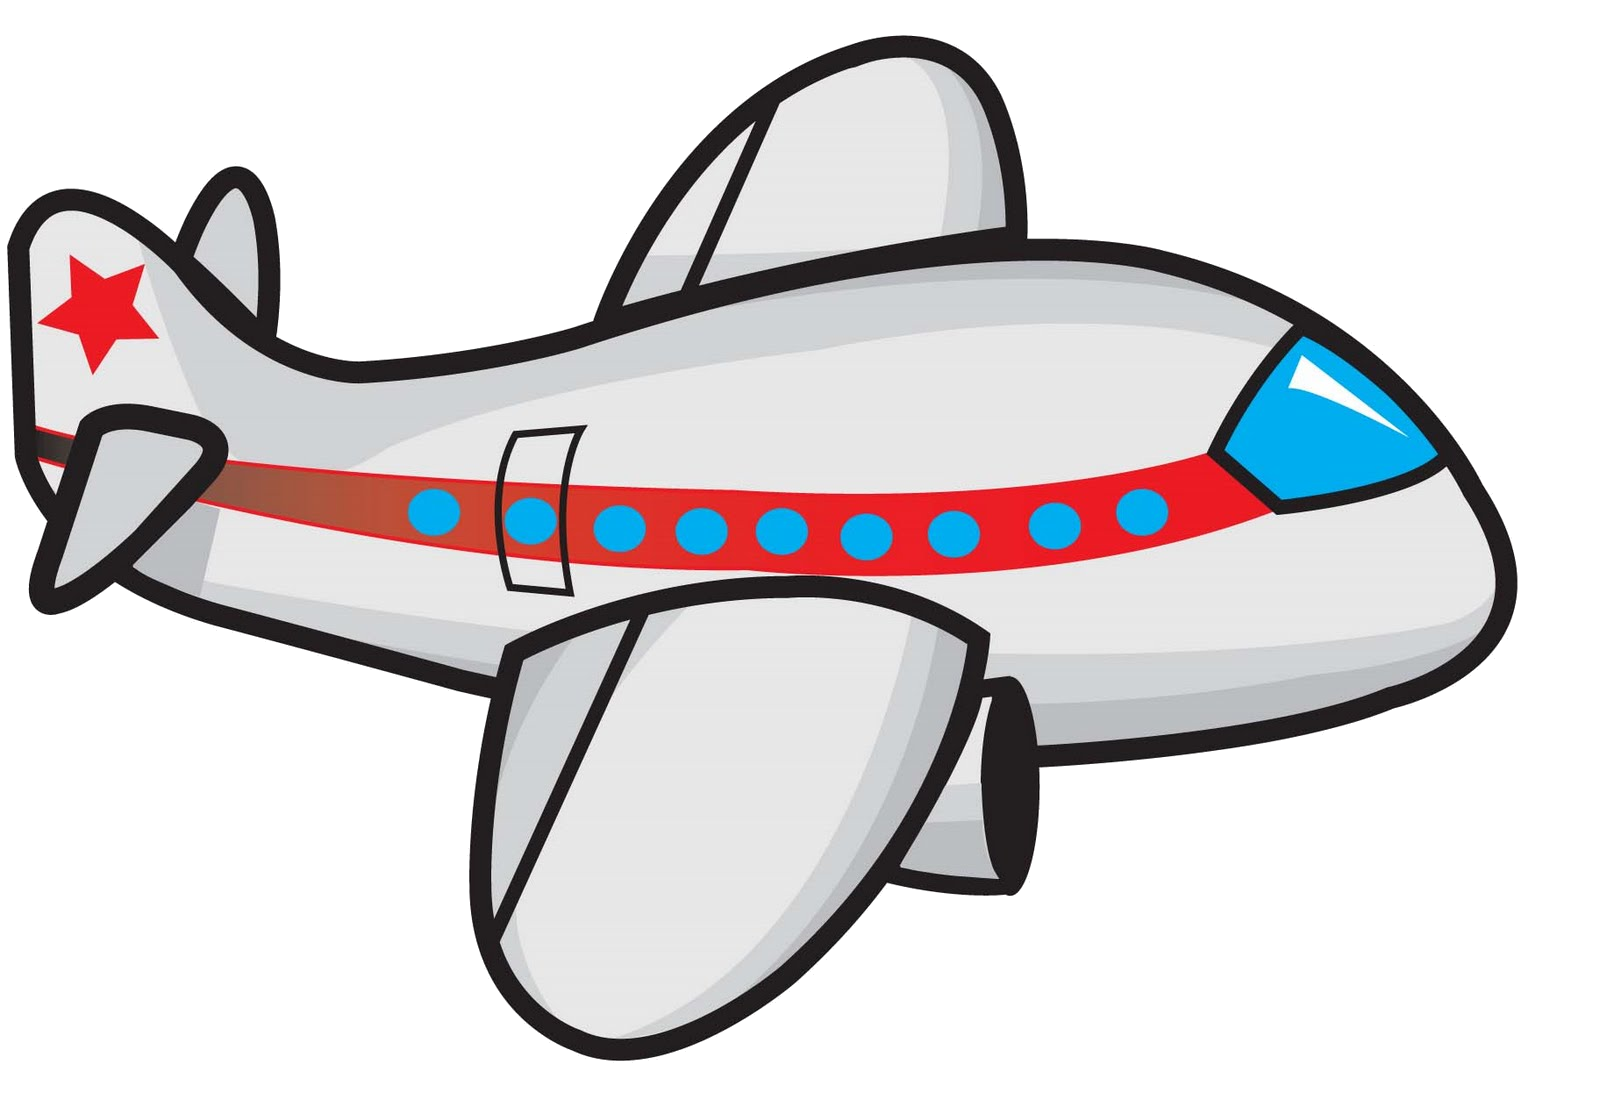 Airplane Cartoon Clipart Free Images Transparent Png.